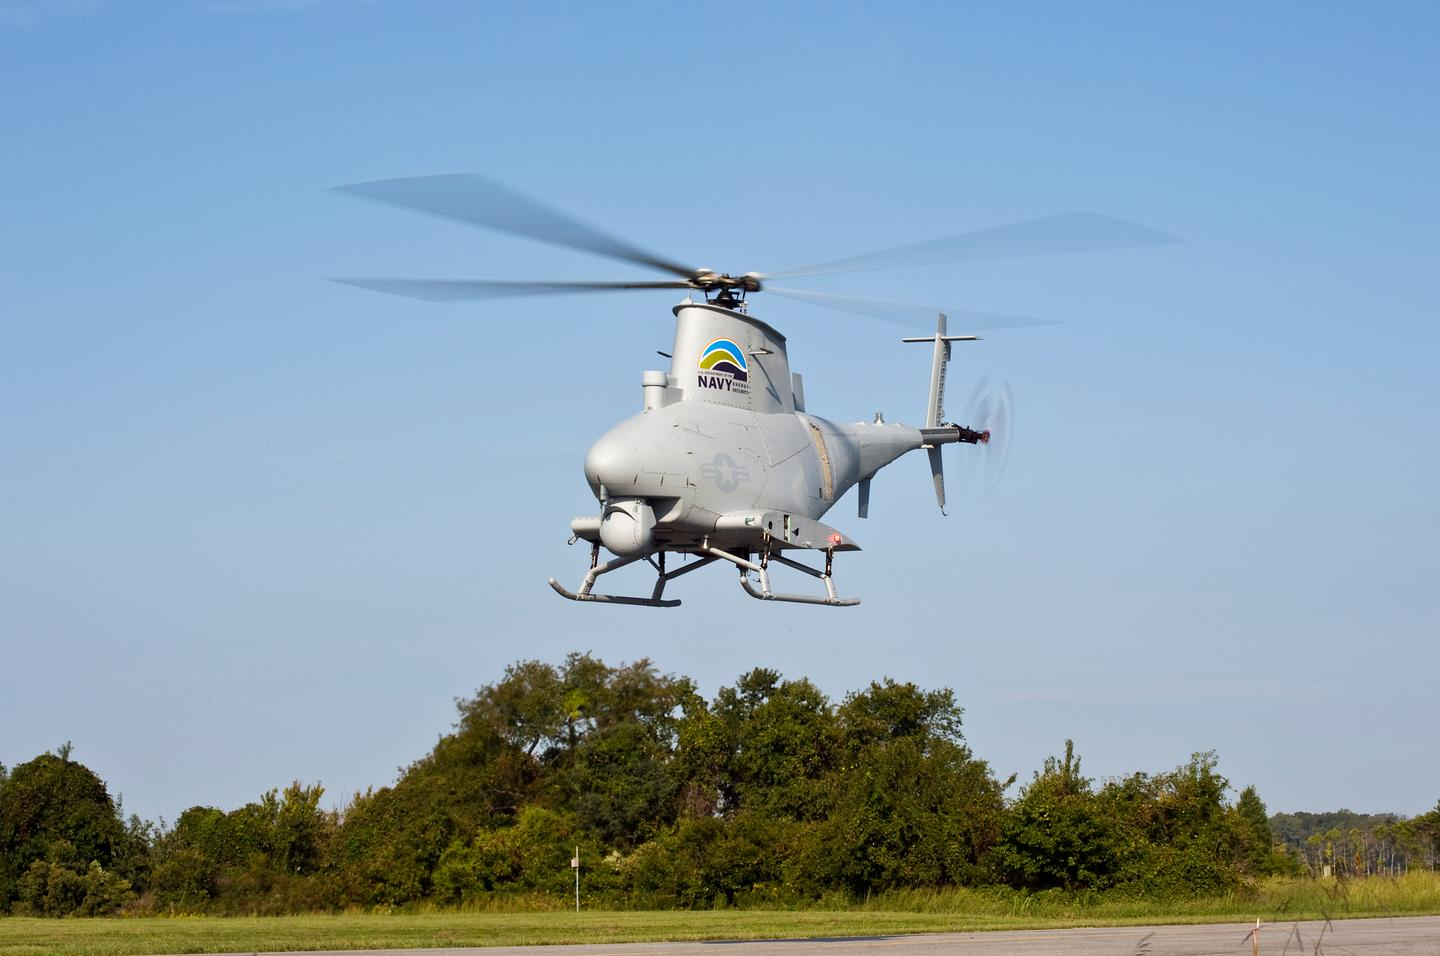 The US Navy has successfully flown its MQ-8B Fire Scout UAV on a blend of JP-5 aviation fuel and plant-based camelina